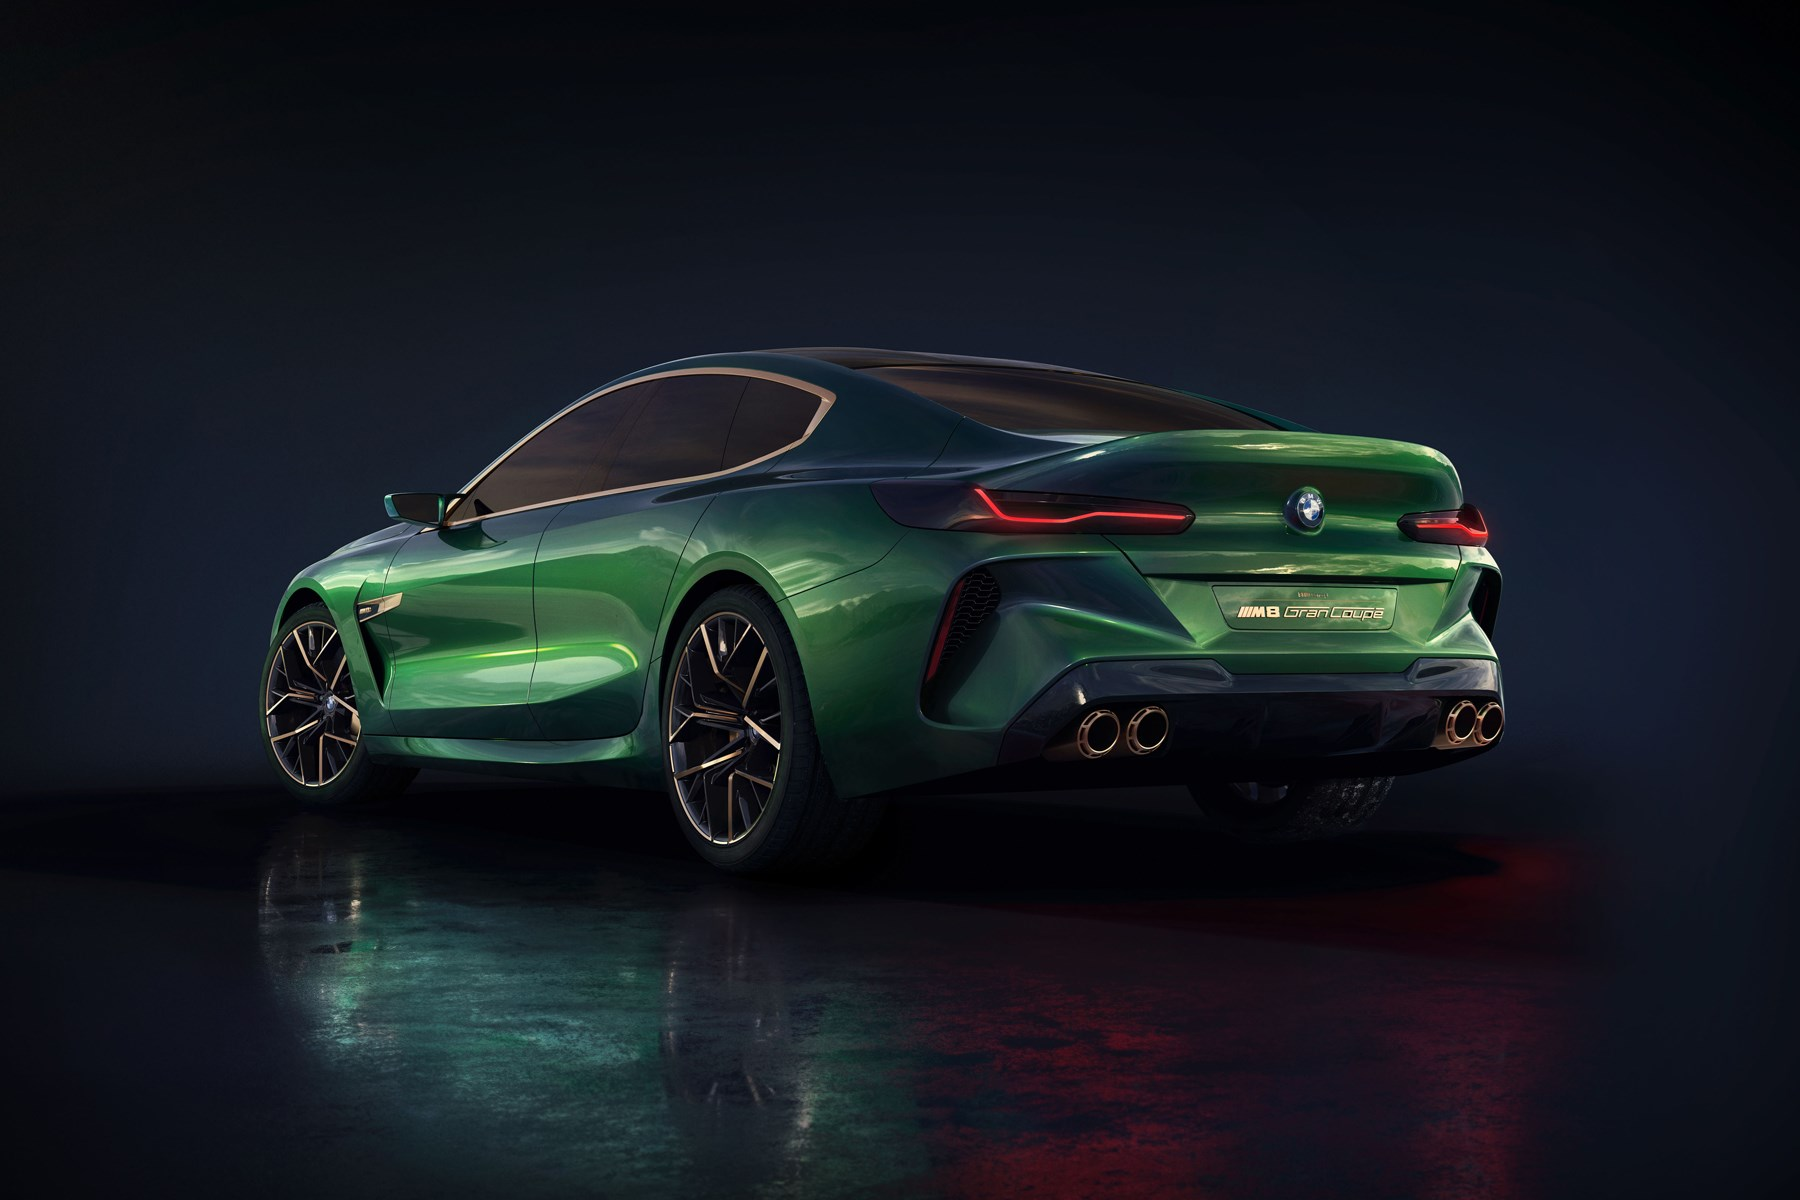 Smart Car Honda >> It's official: the new BMW concept M8 Gran Coupe | CAR Magazine